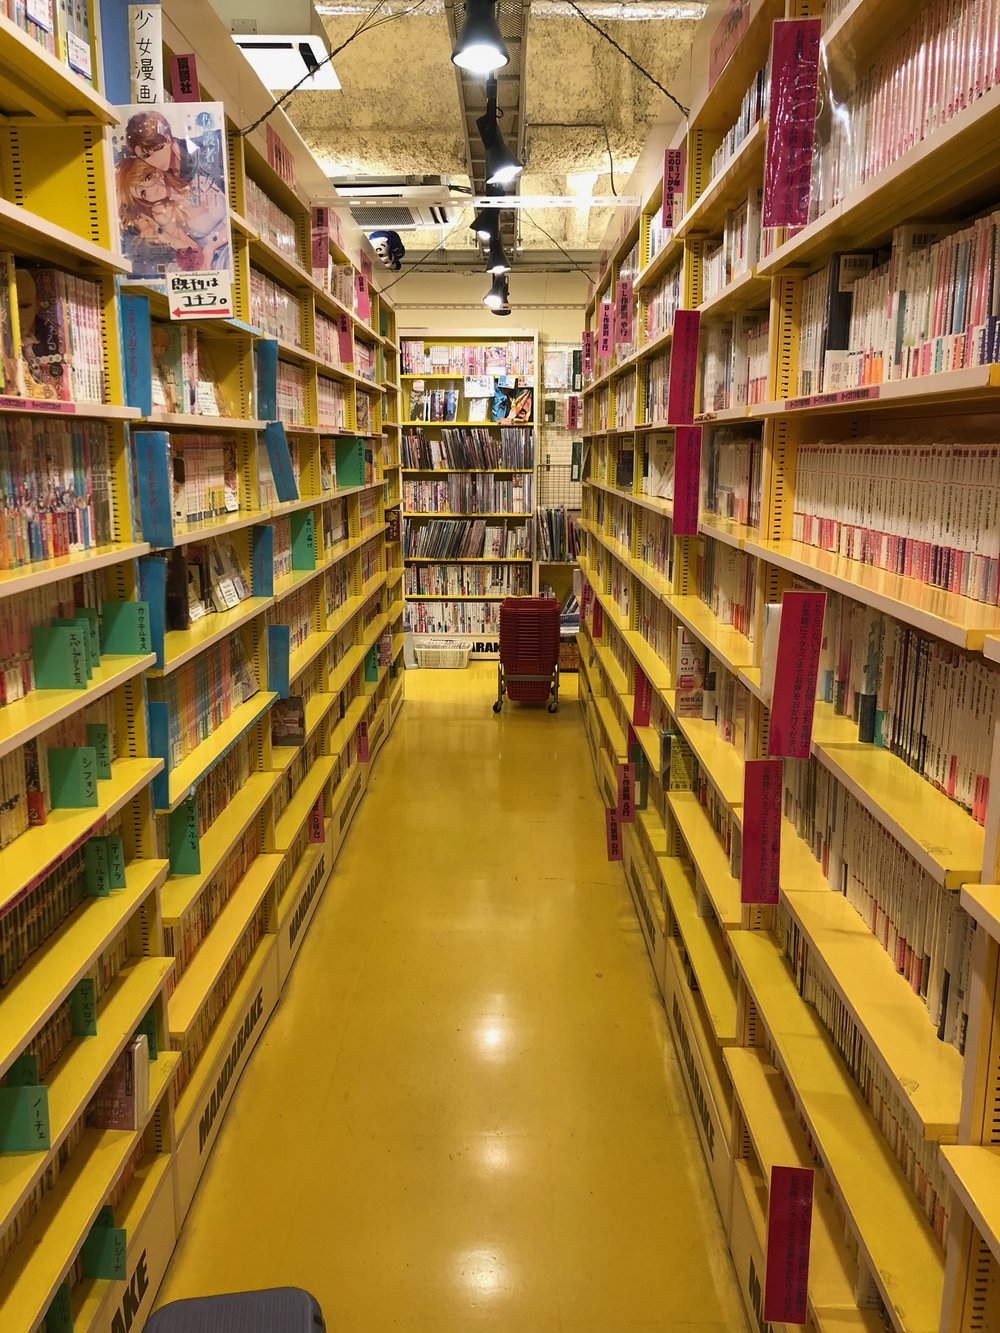 A typical manga (Japanese comics) store with endless shelves of comics. This particular level featured gay/lesbian manga and a focus on J-POP boy bands.